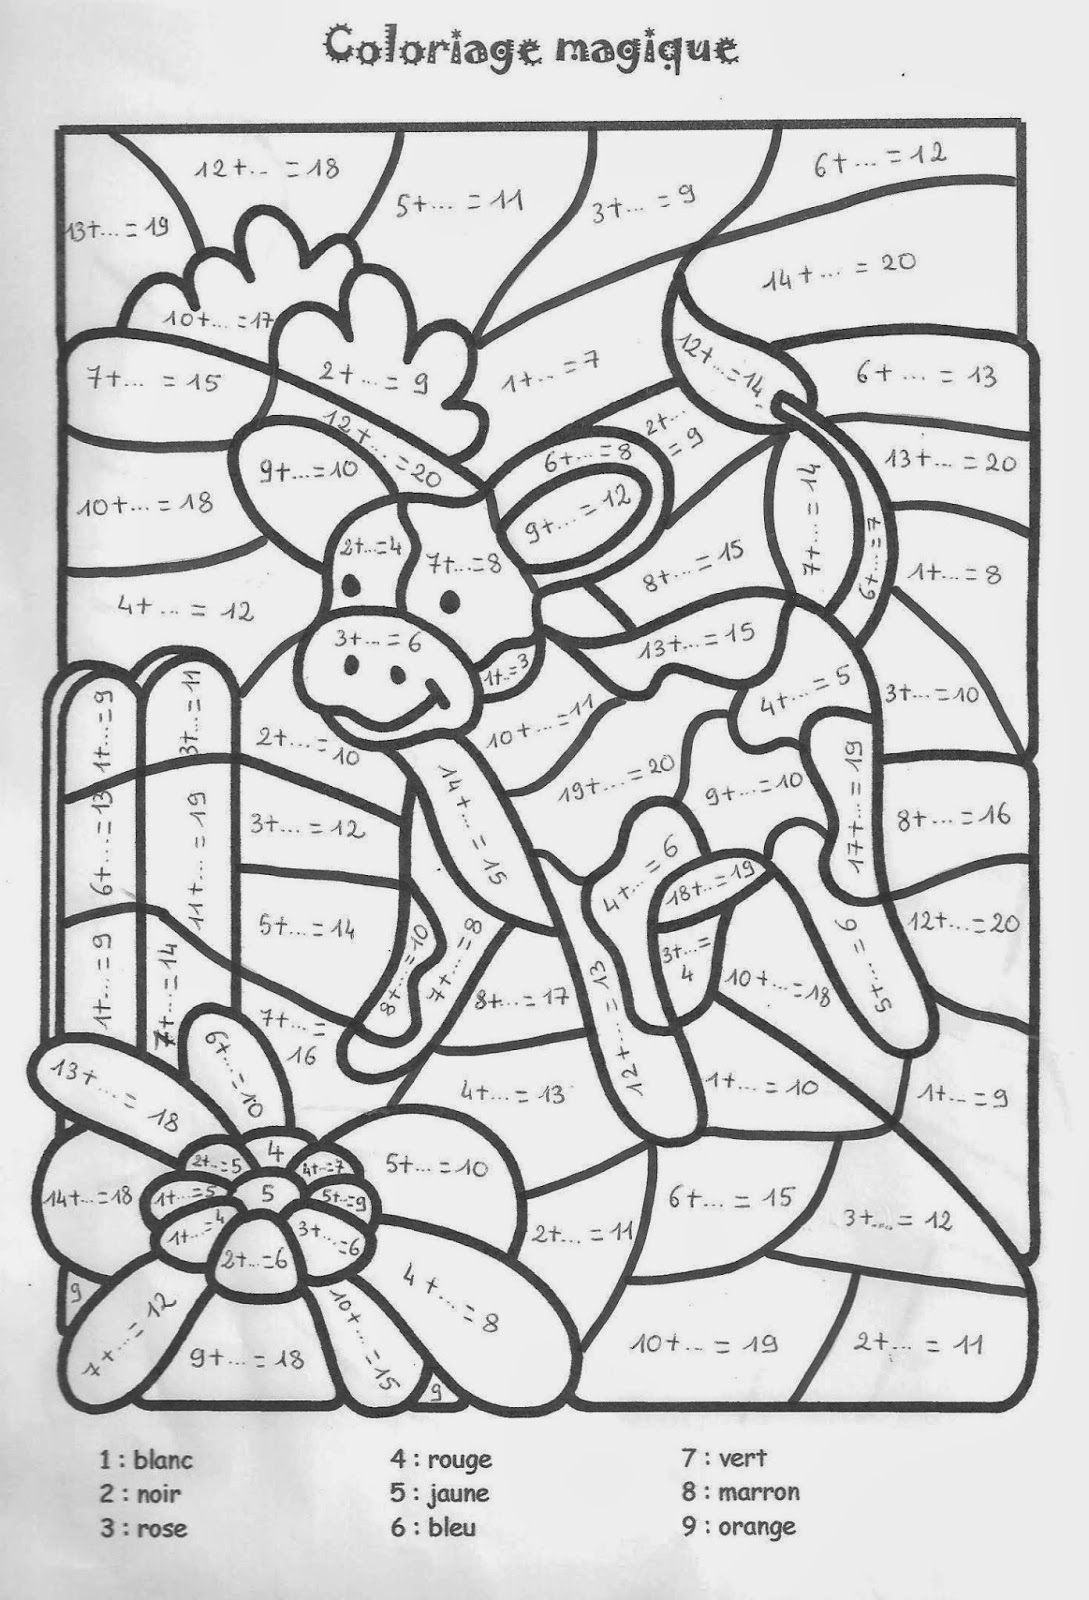 Coloriage magique table de multiplication 2 3 4 5 - Coloriage magique tables ...